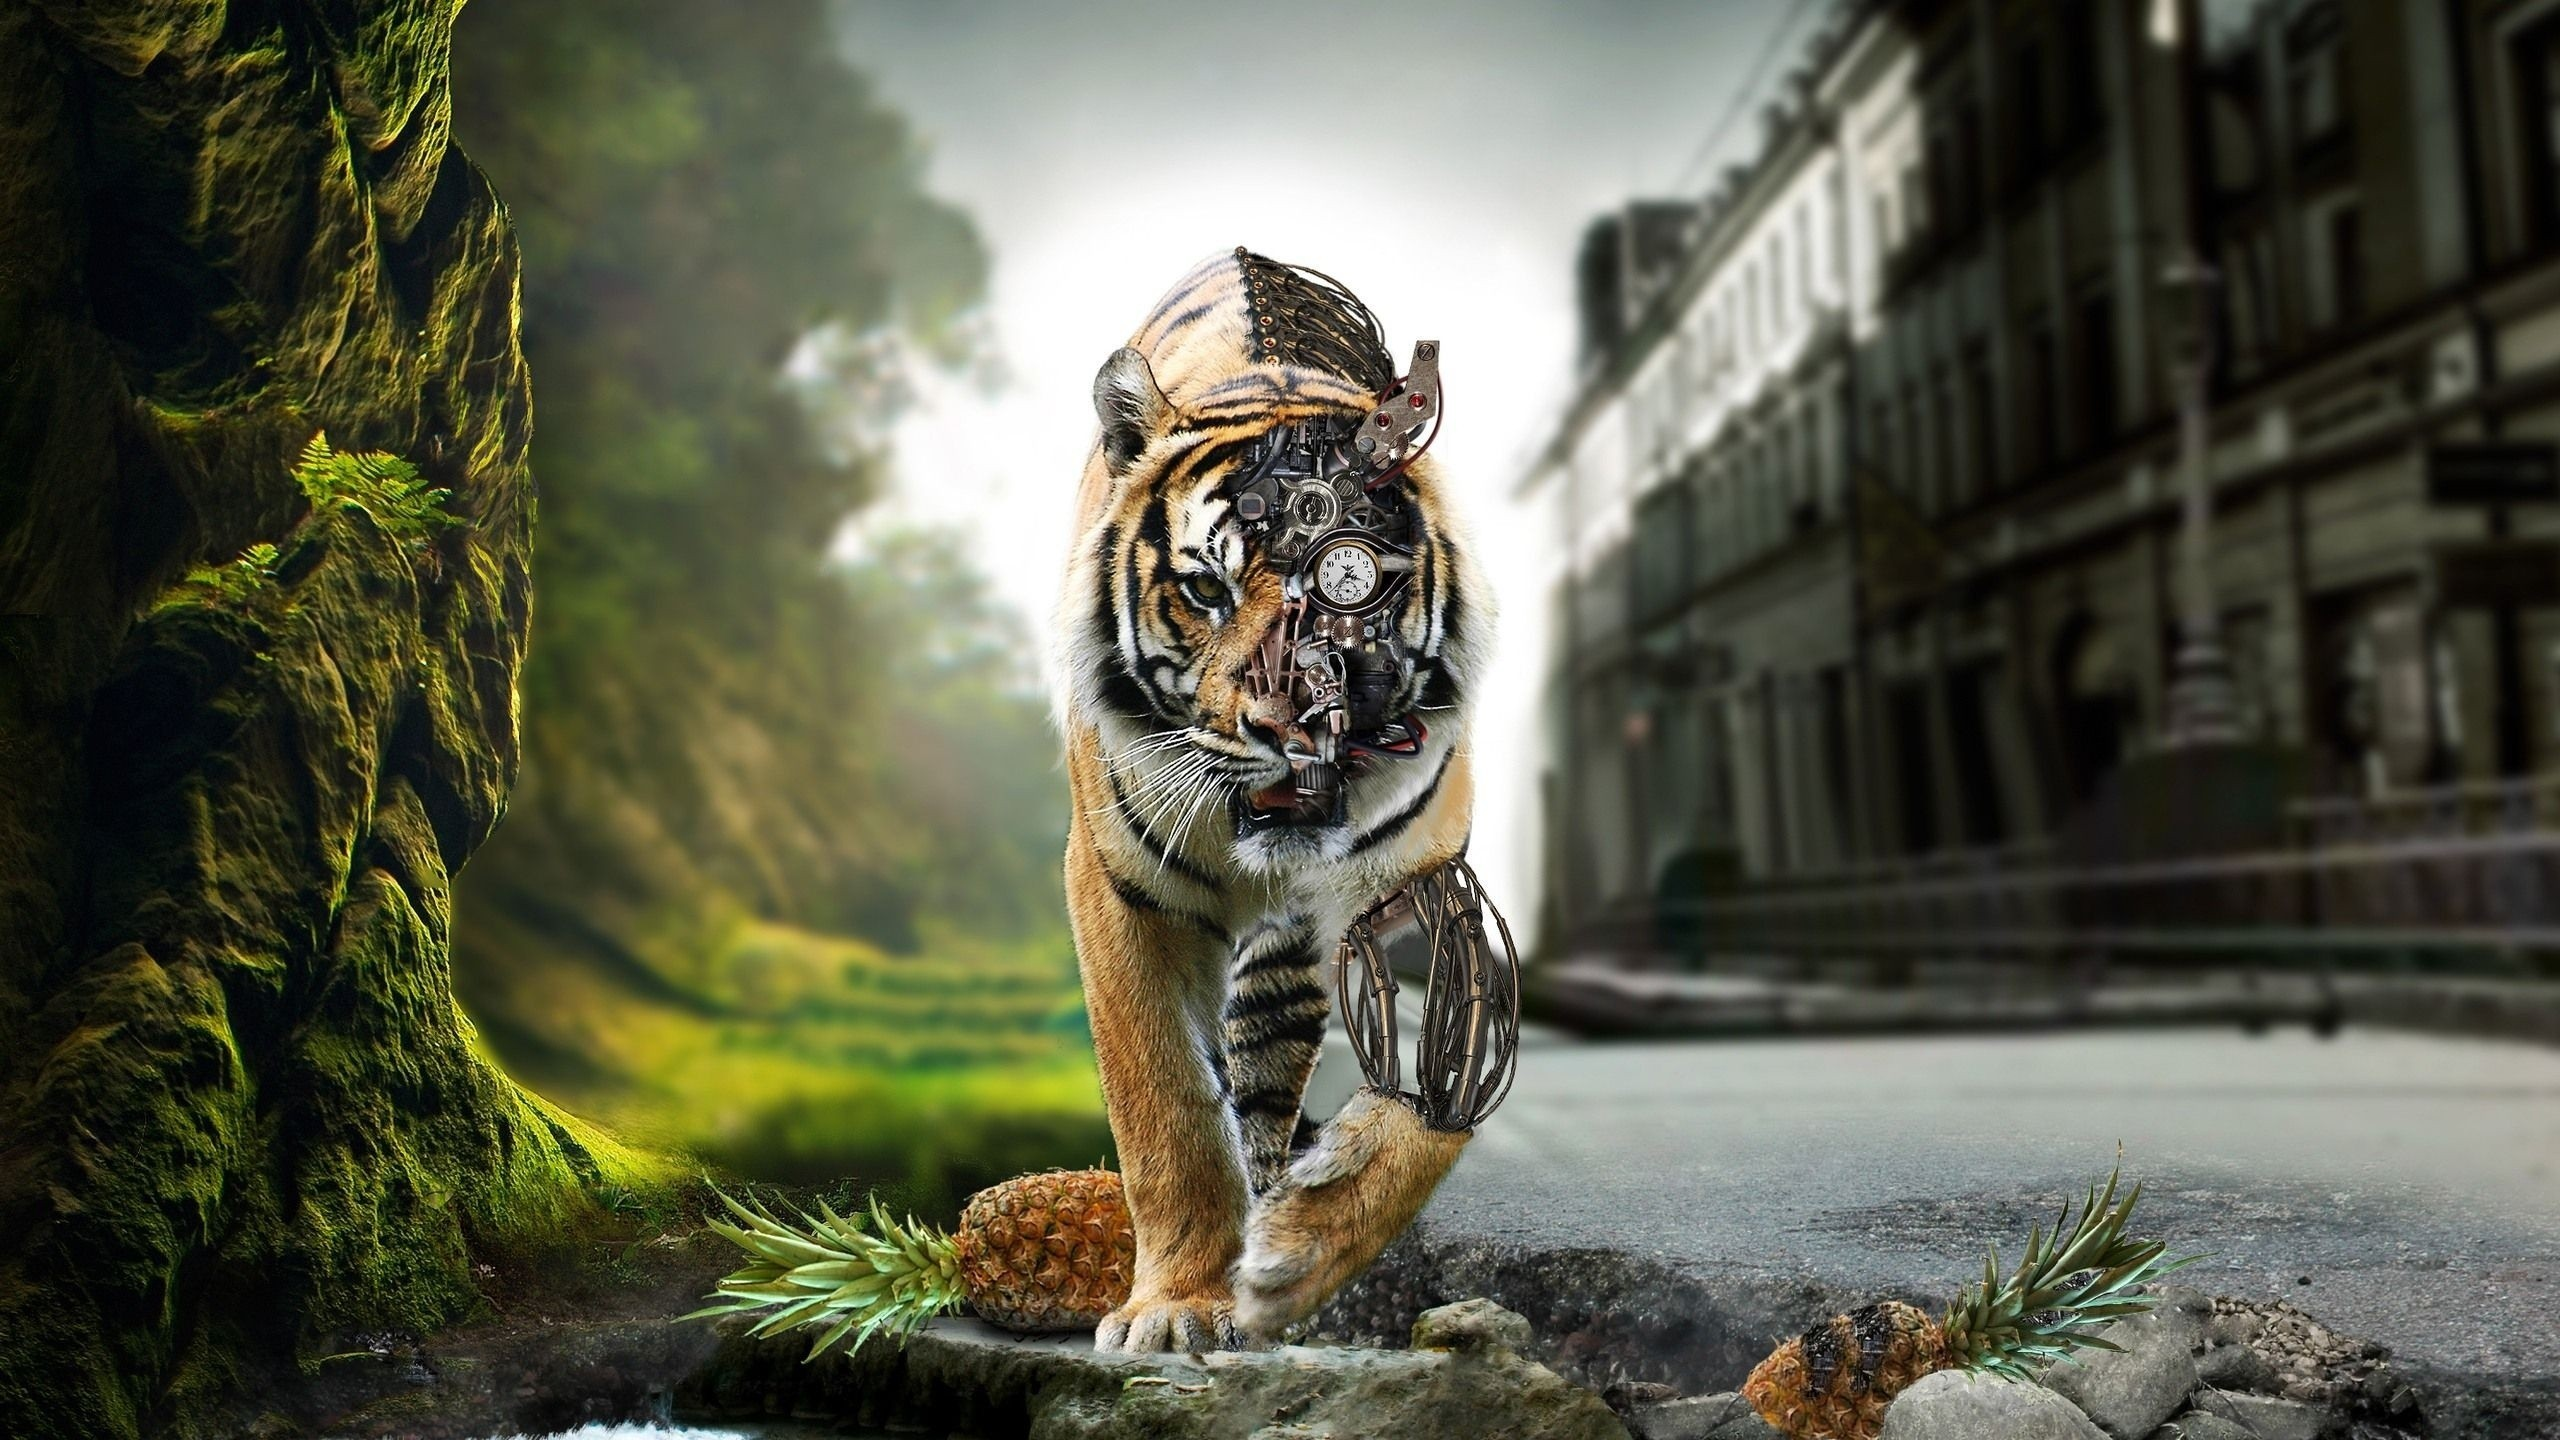 Cool Hd Wallpapers p Lion Wallpapers Kid HD Lion Wallpapers Wallpapers)